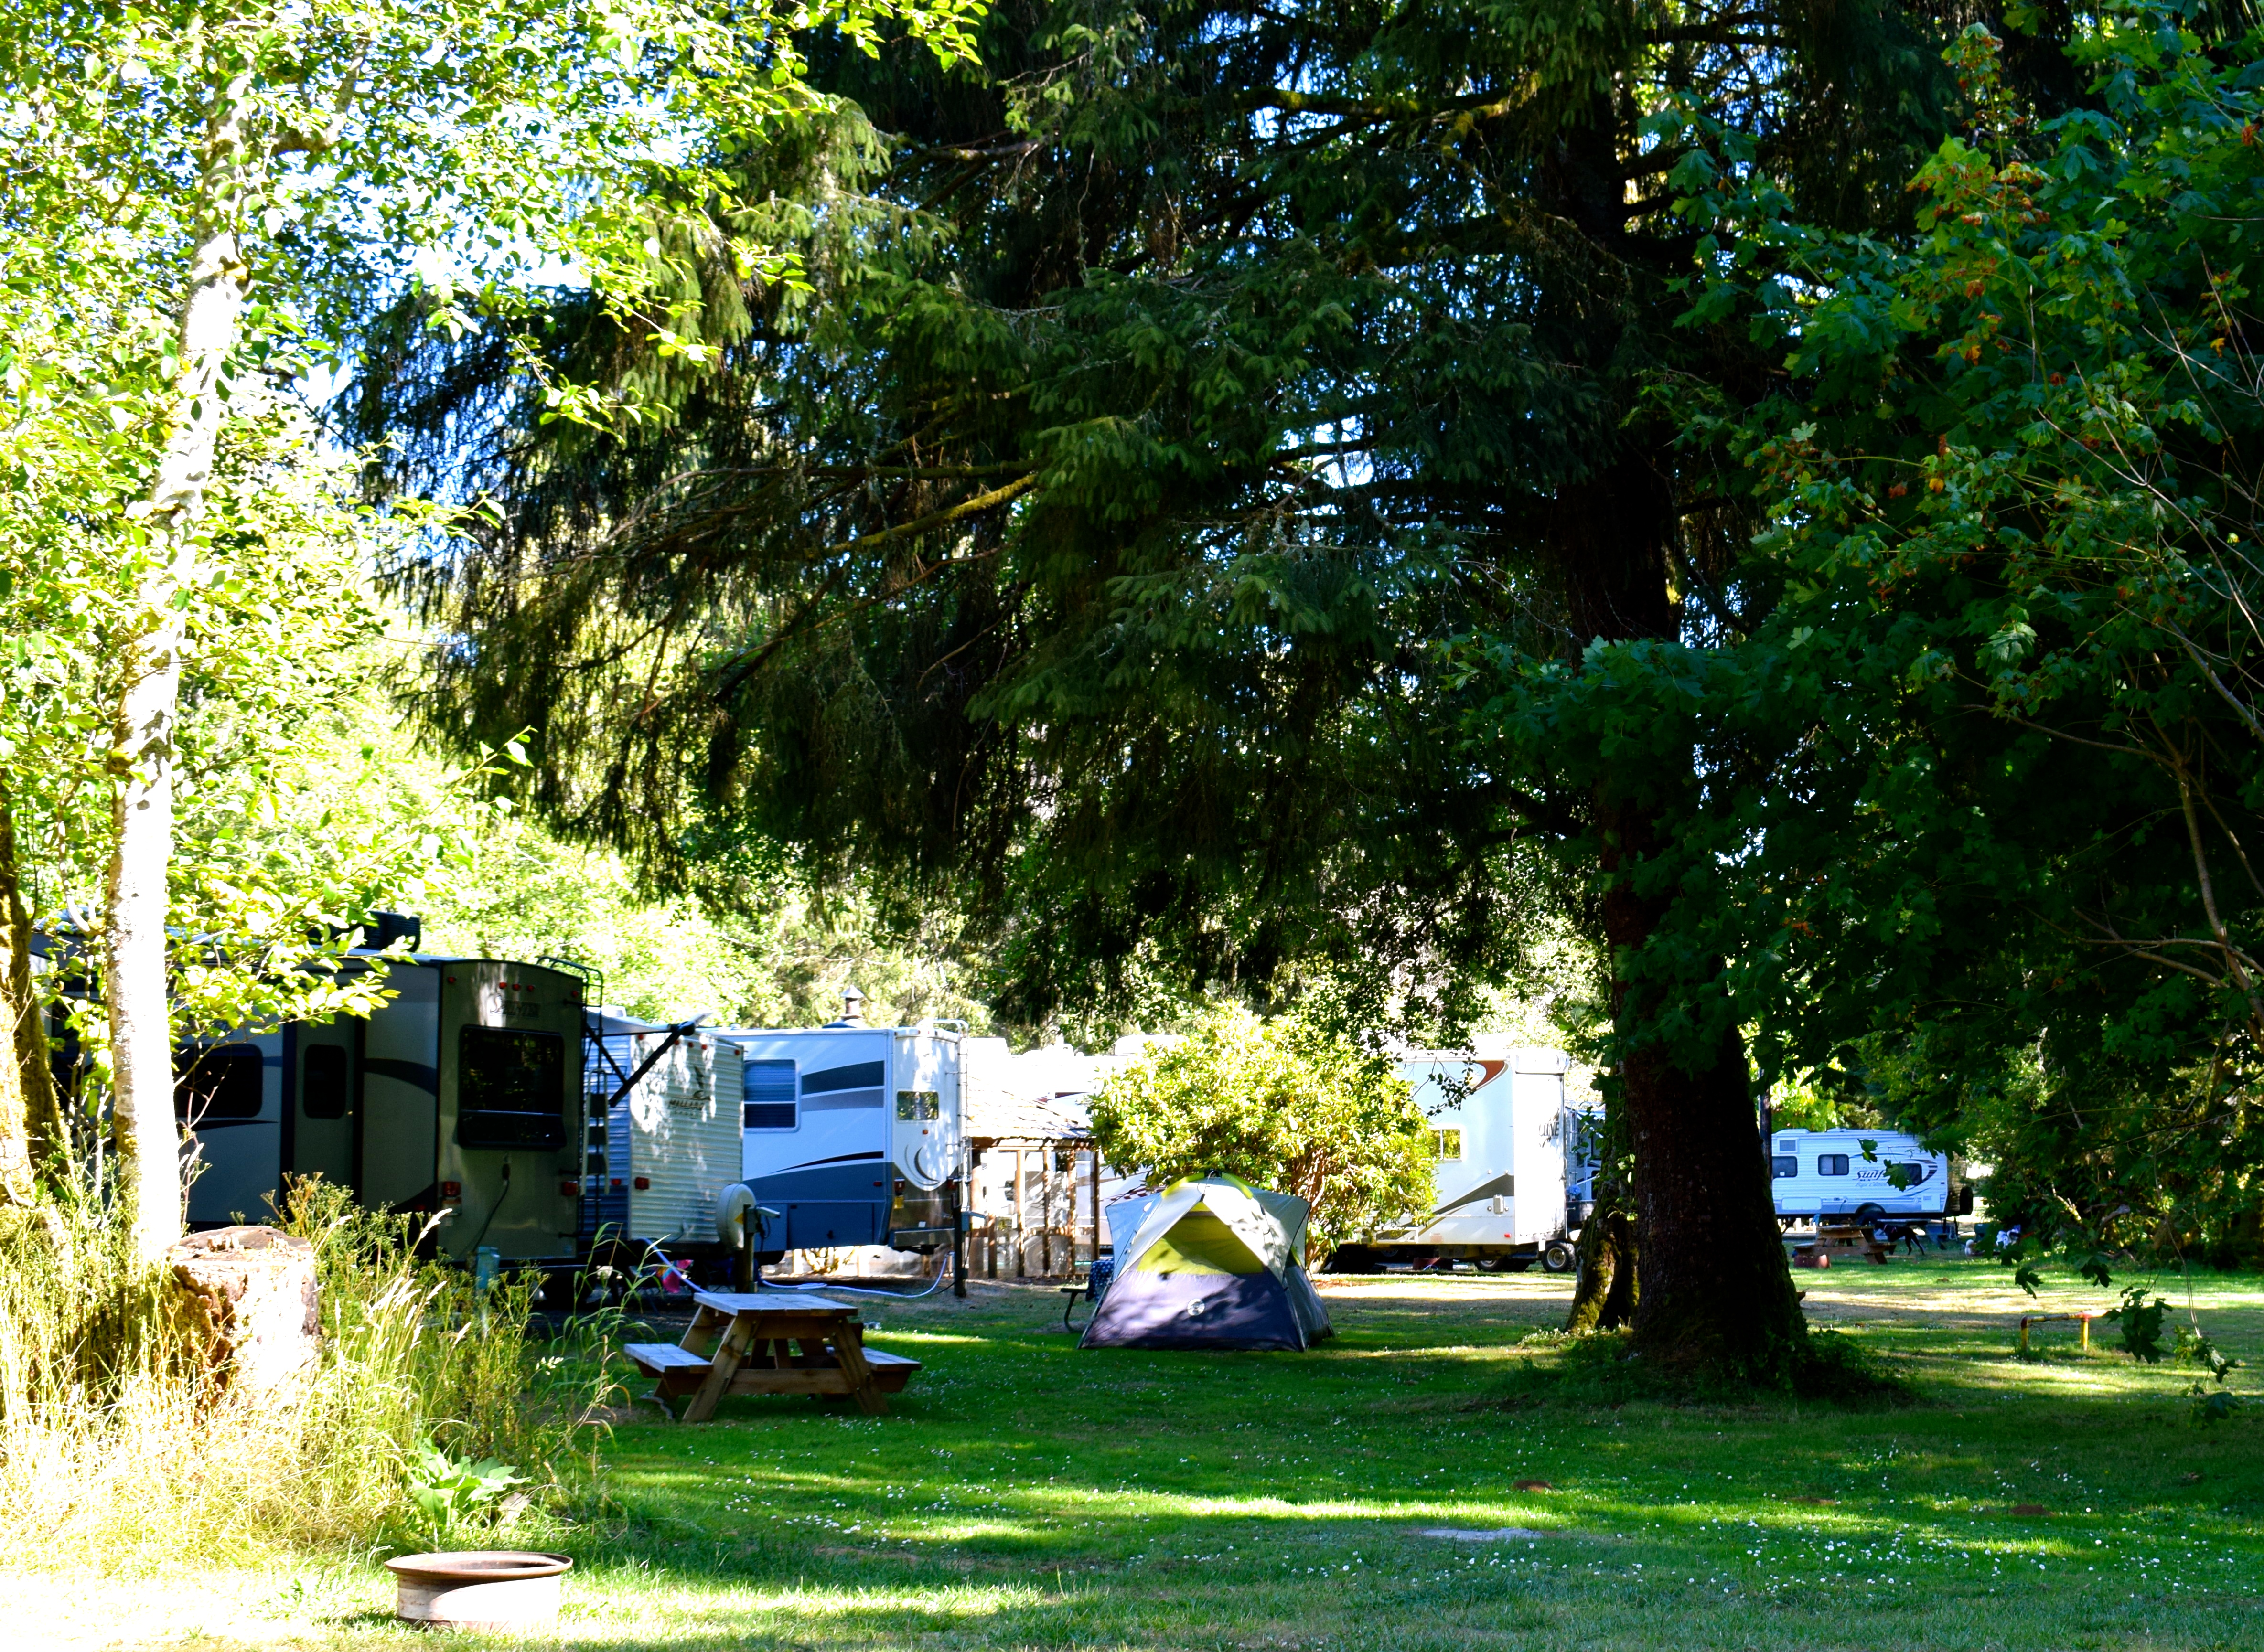 Camp or RV